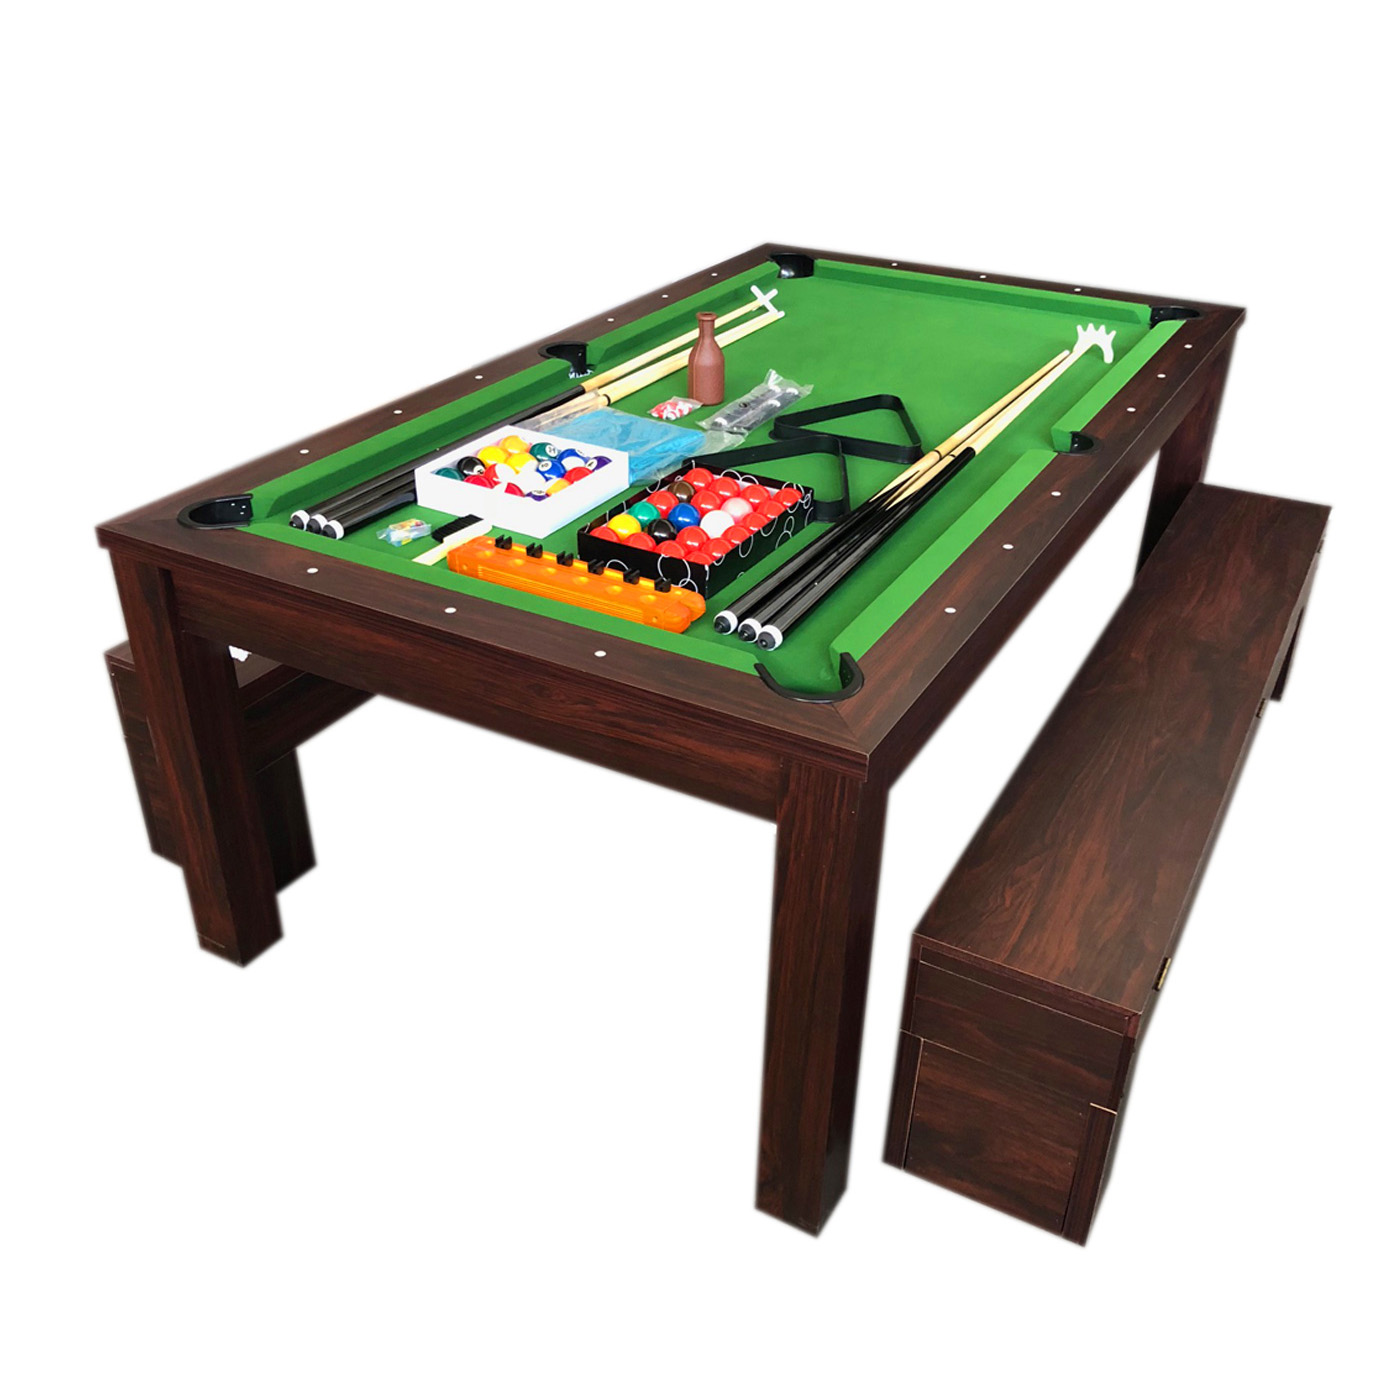 10 FT Pool Table and Dining Table with Container Benches – Rich Green